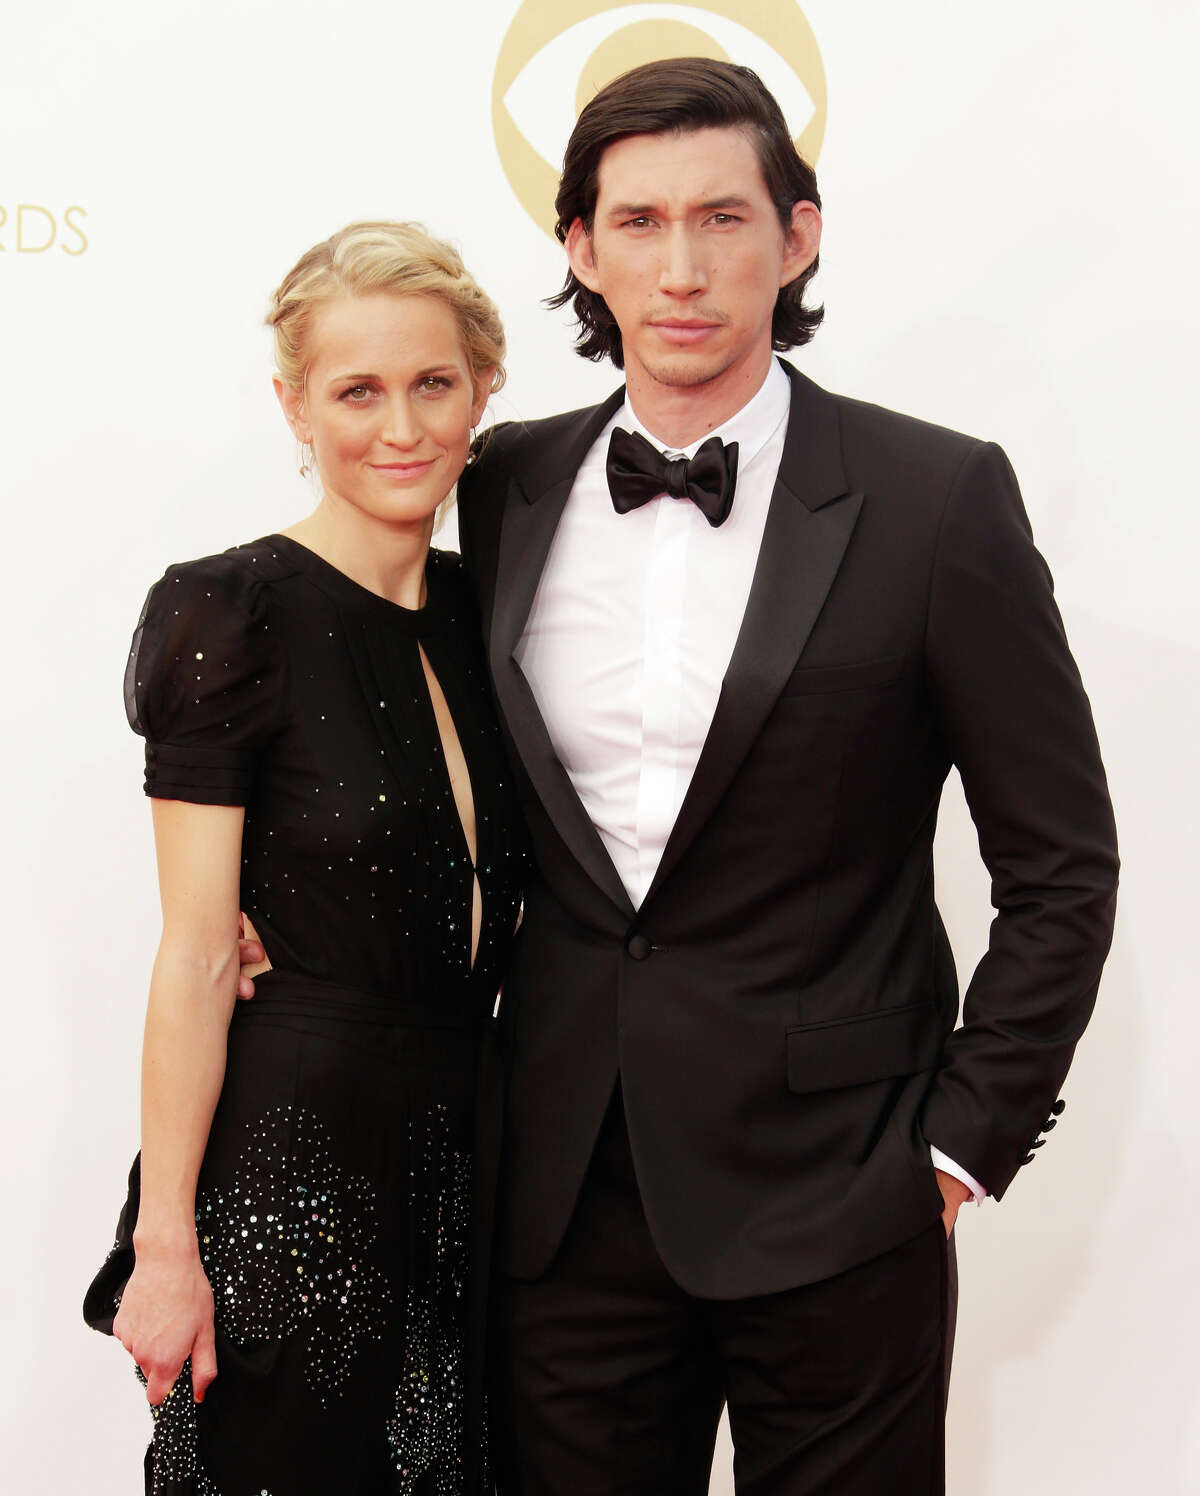 Joanne Tucker and Adam Driver arrive at the 65th Annual Primetime Emmy Awards held at Nokia Theatre L.A. Live on September 22, 2013 in Los Angeles, California.